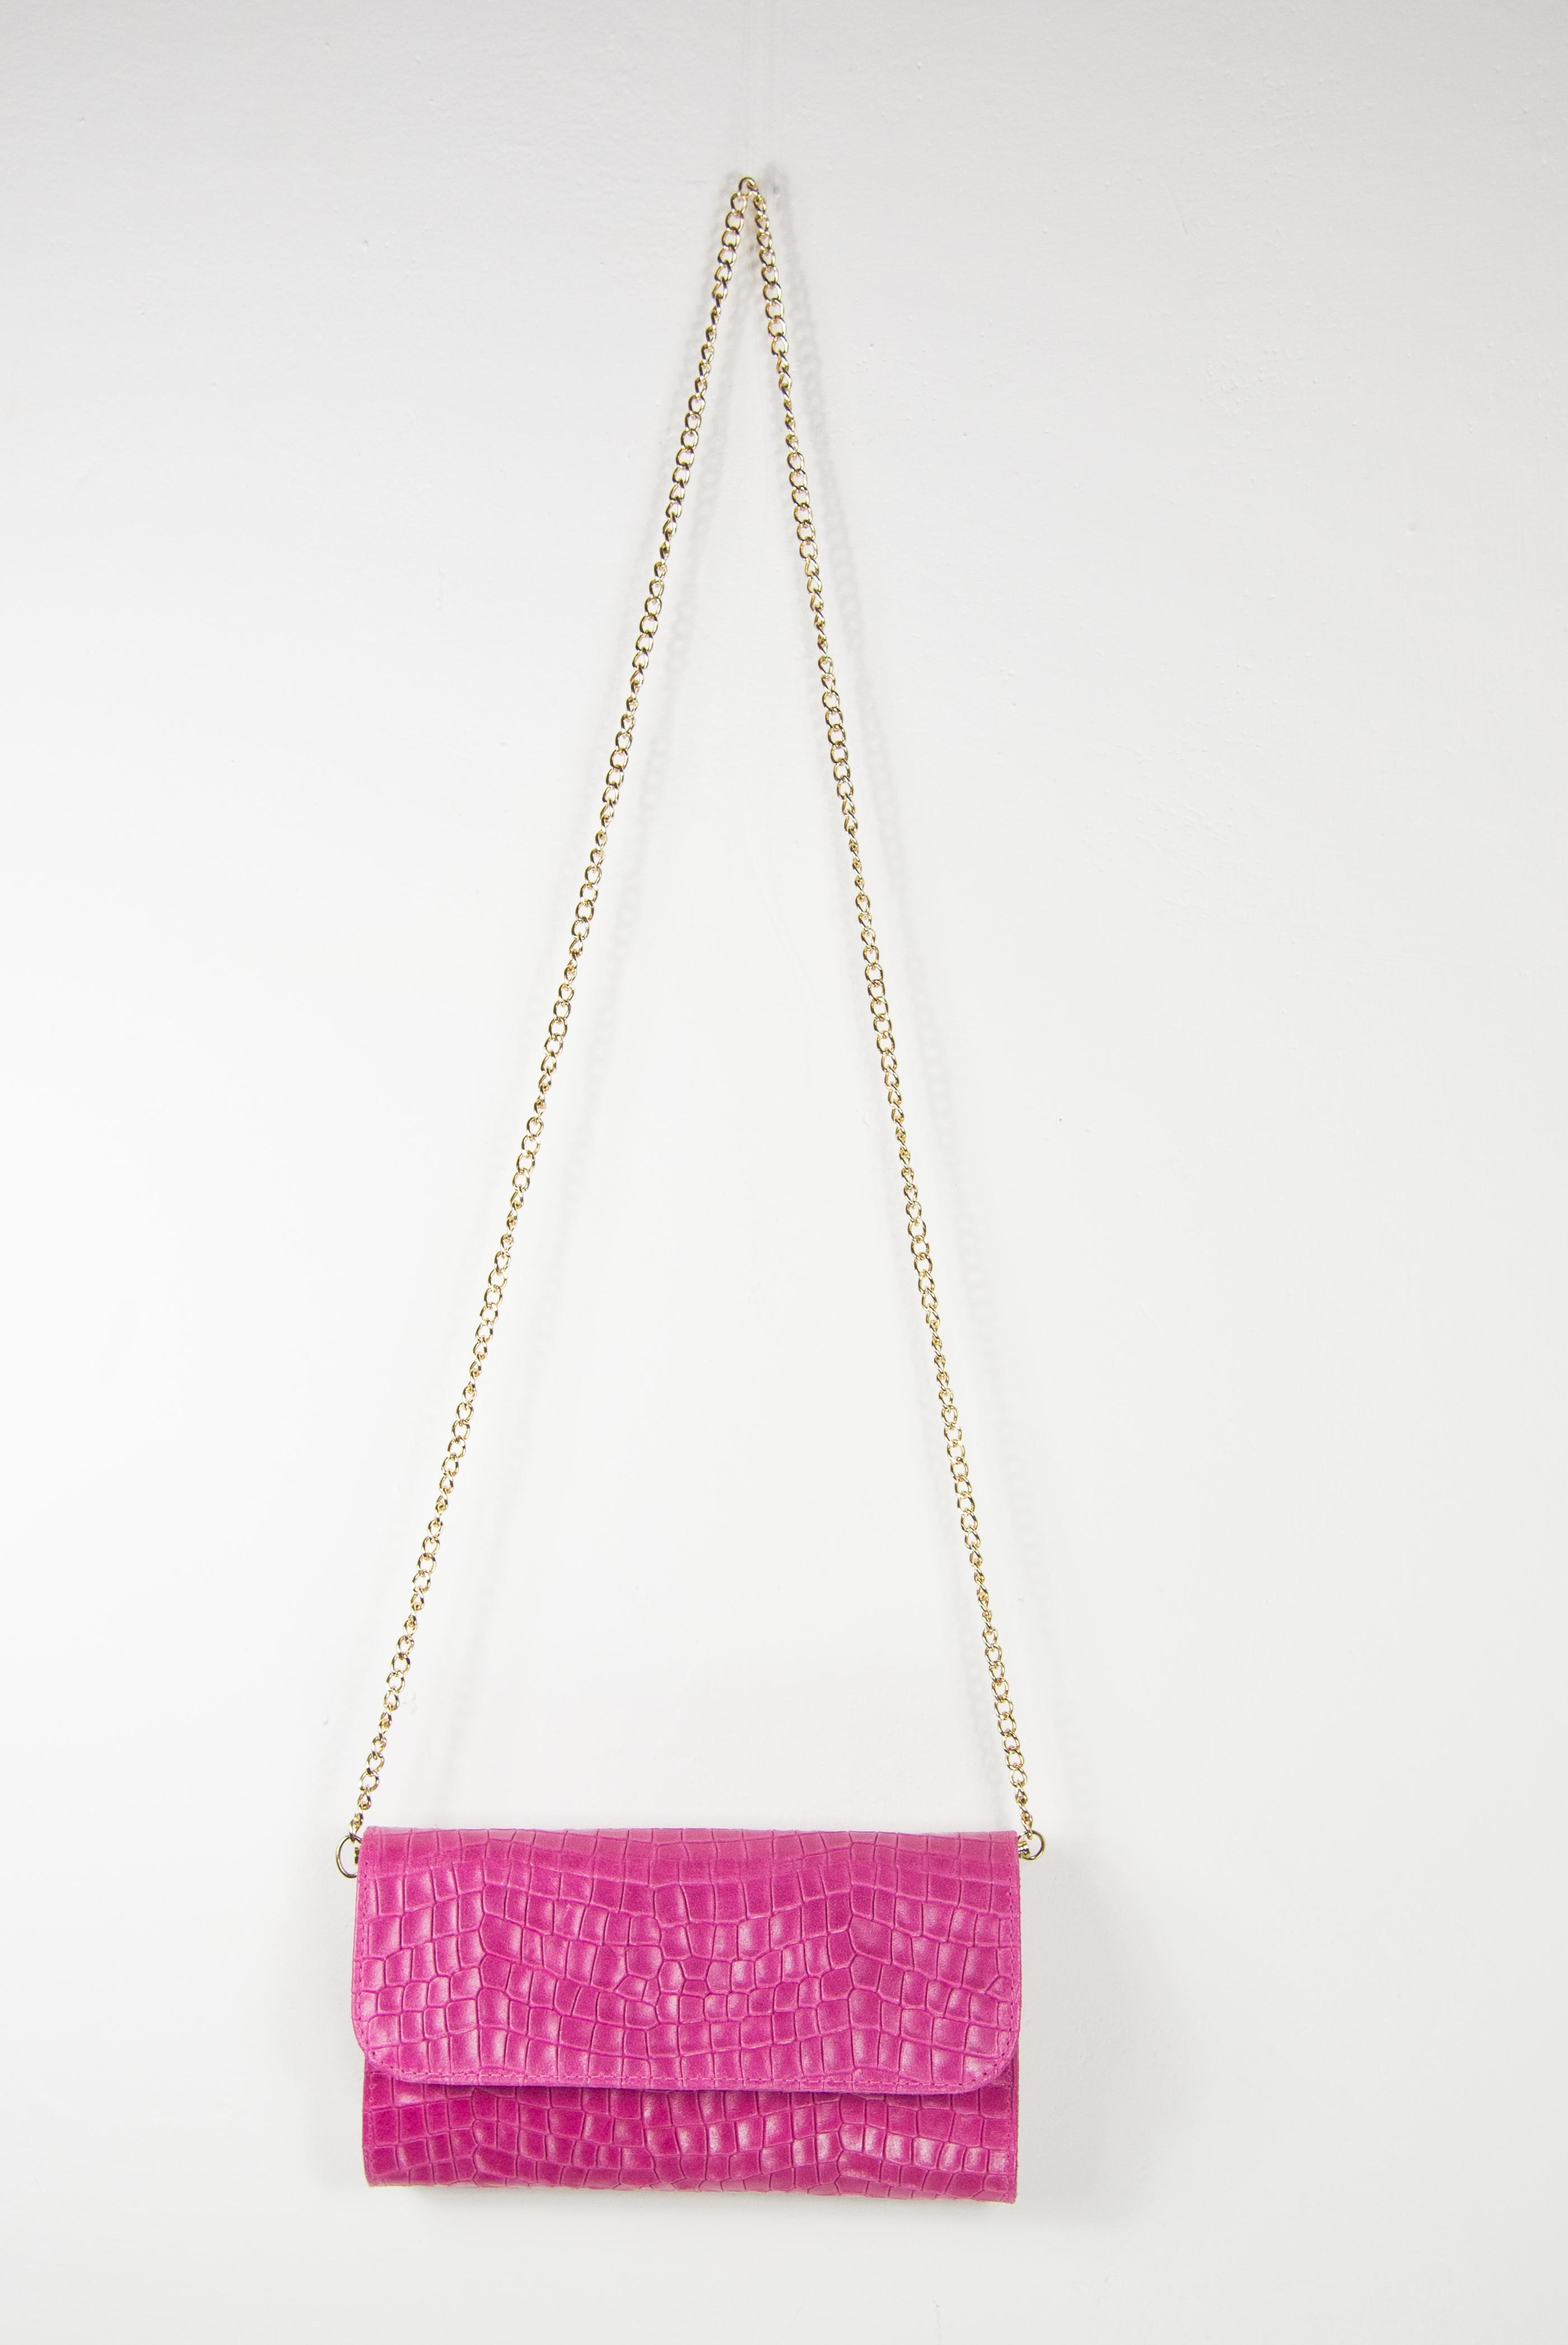 Fuchsia clutch bag in worked leather. Online bags